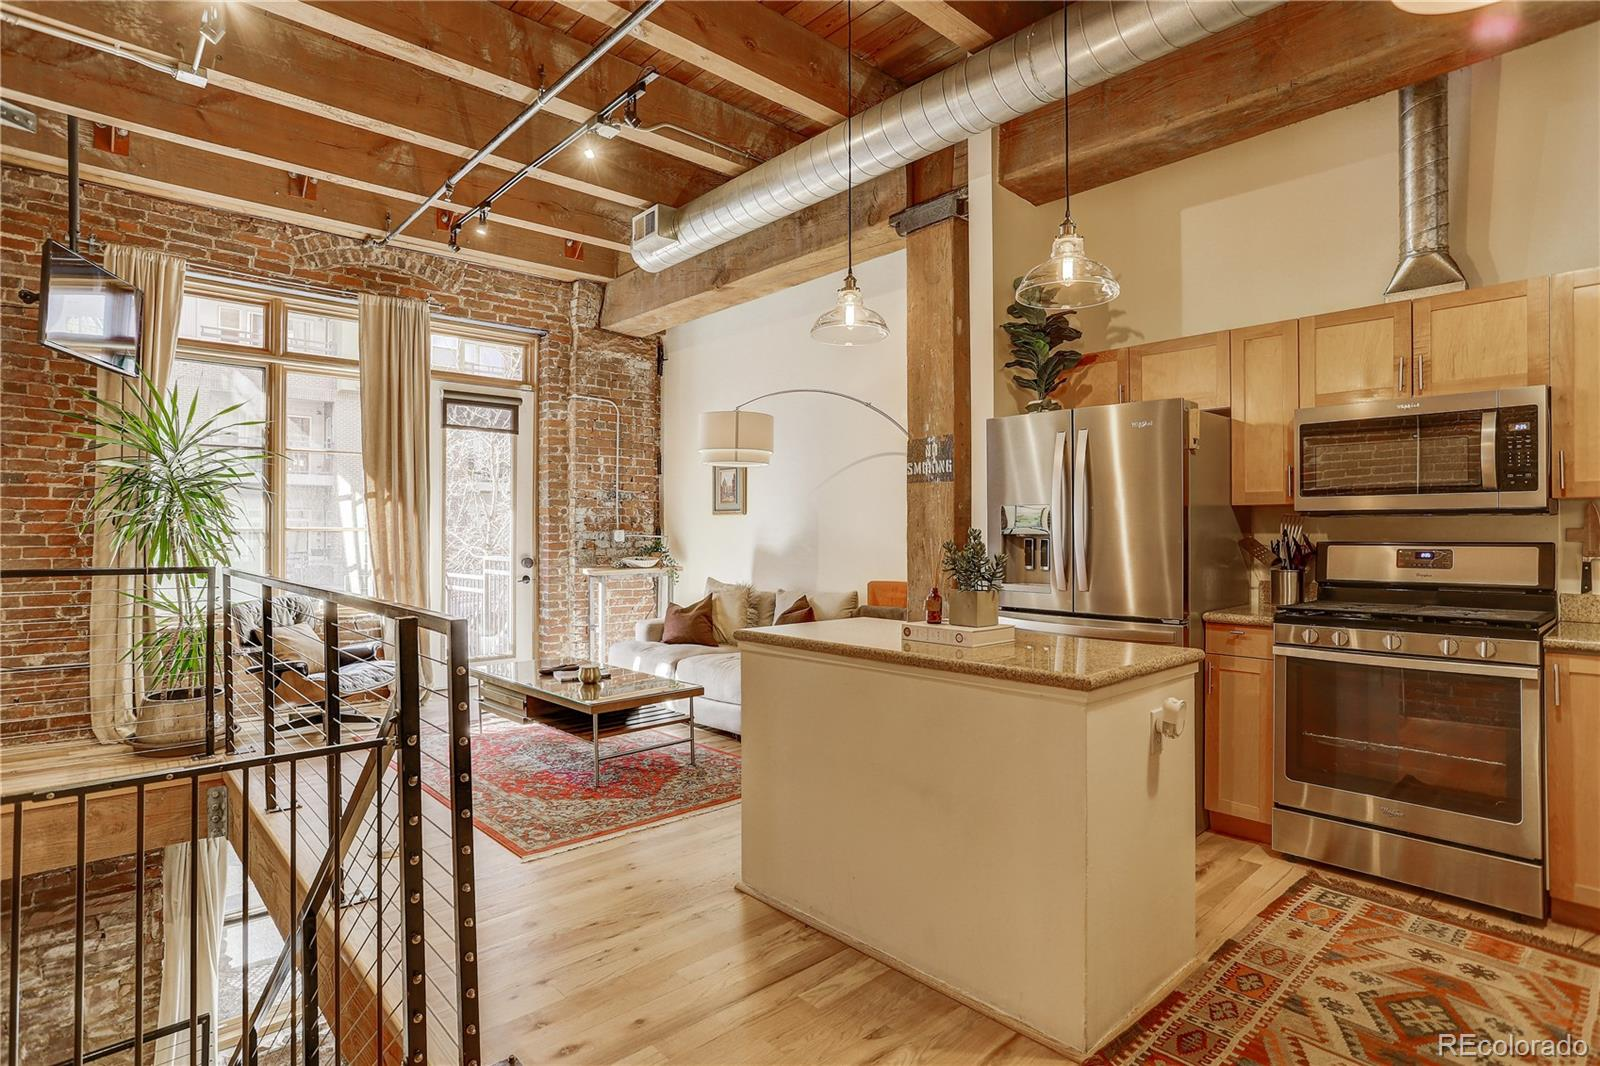 Beautiful and unique Watertower Loft!  Lives like a brownstone with entry directly into the unit from Inca. You are immediately welcomed by an open living room with character from floor to ceiling. Exposed brick, original wood beams, and soaring ceiling heights paired with all the modern amenities make this the perfect downtown home!  As you make your way into the open kitchen,  you'll love hosting your guests around the island or just around the corner for a dinner party. You'll find your first full bathroom, off the dining room.  In-unit washer and dryer and extra storage are tucked away from the living / hosting space and simplify downtown living. Next, you'll walk down the exposed staircase to the second oversized living room. This room has endless possibilities;  an office, room for your pool table, or a media room? Finally, you enter the oversized master suite complete with a second full bath, walk-in closet, and workout room or den. 